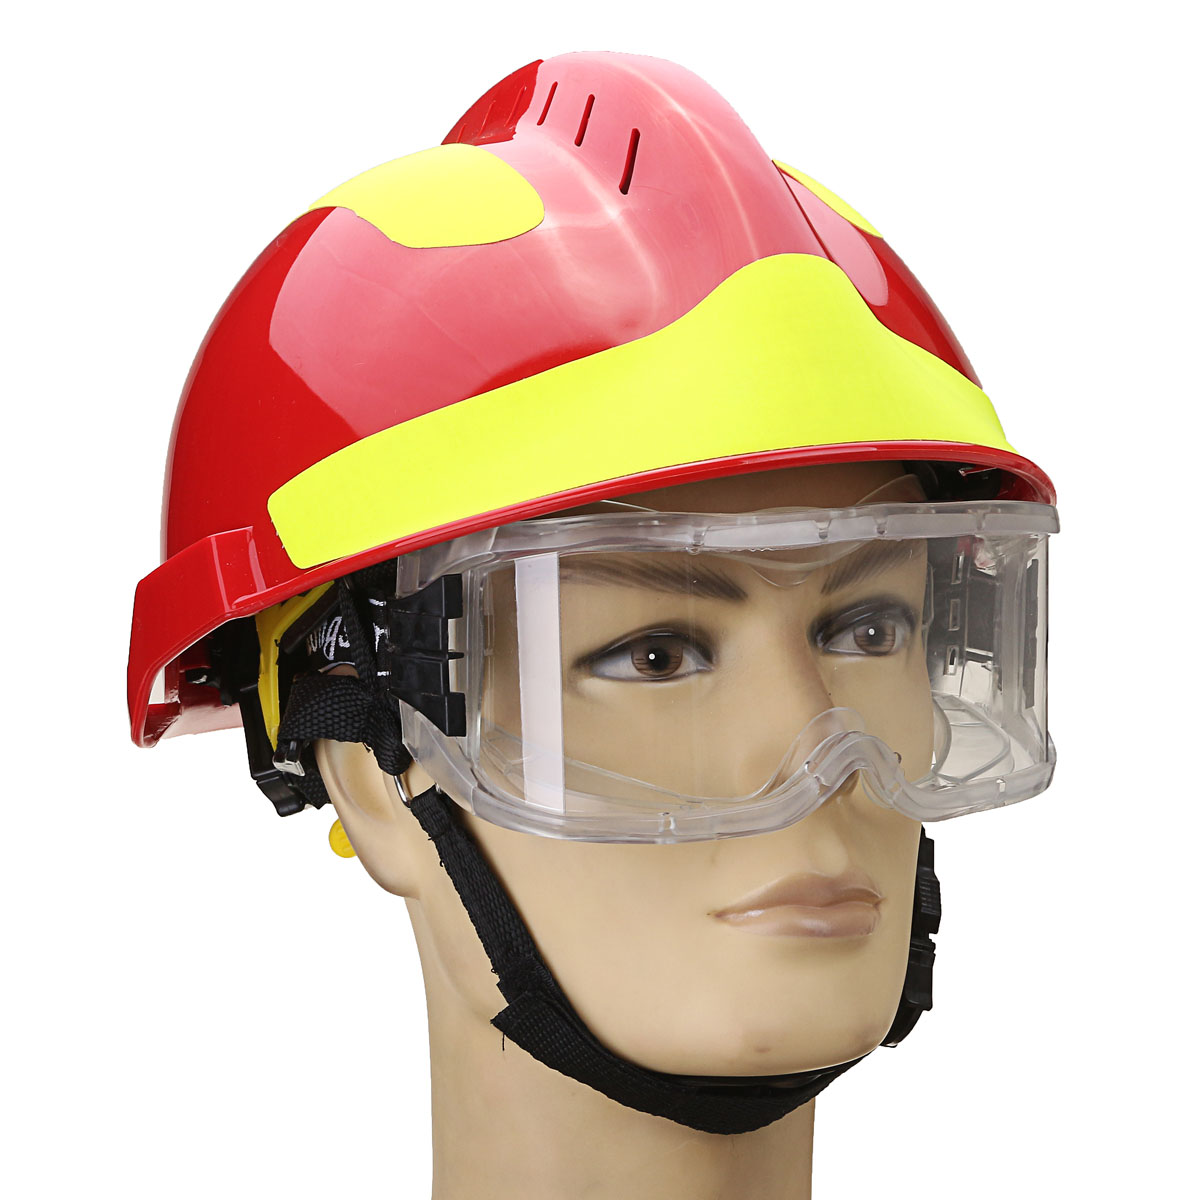 NEW Rescue Helmet Fire Fighter Protective Glasses Safety Protector  Workplace Safety Fire Protection  53CM-63CM angela royston fire fighter